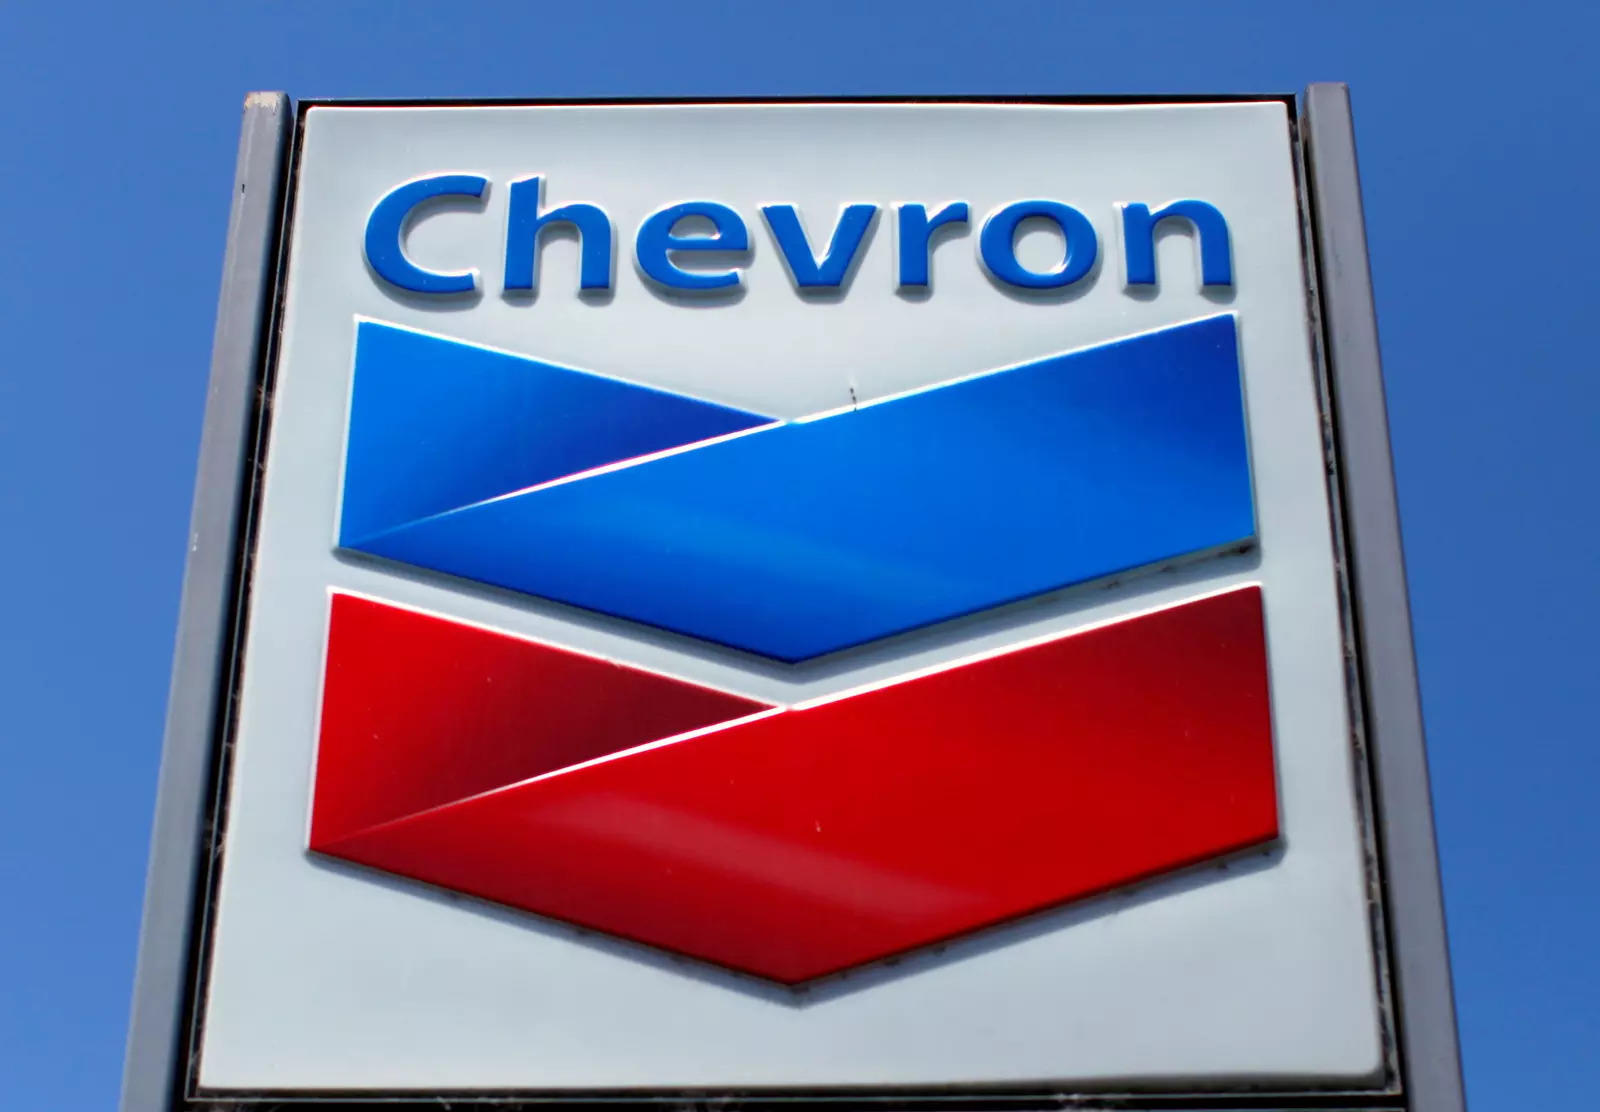 Chevron would rather pay dividends than invest in wind and solar -CEO